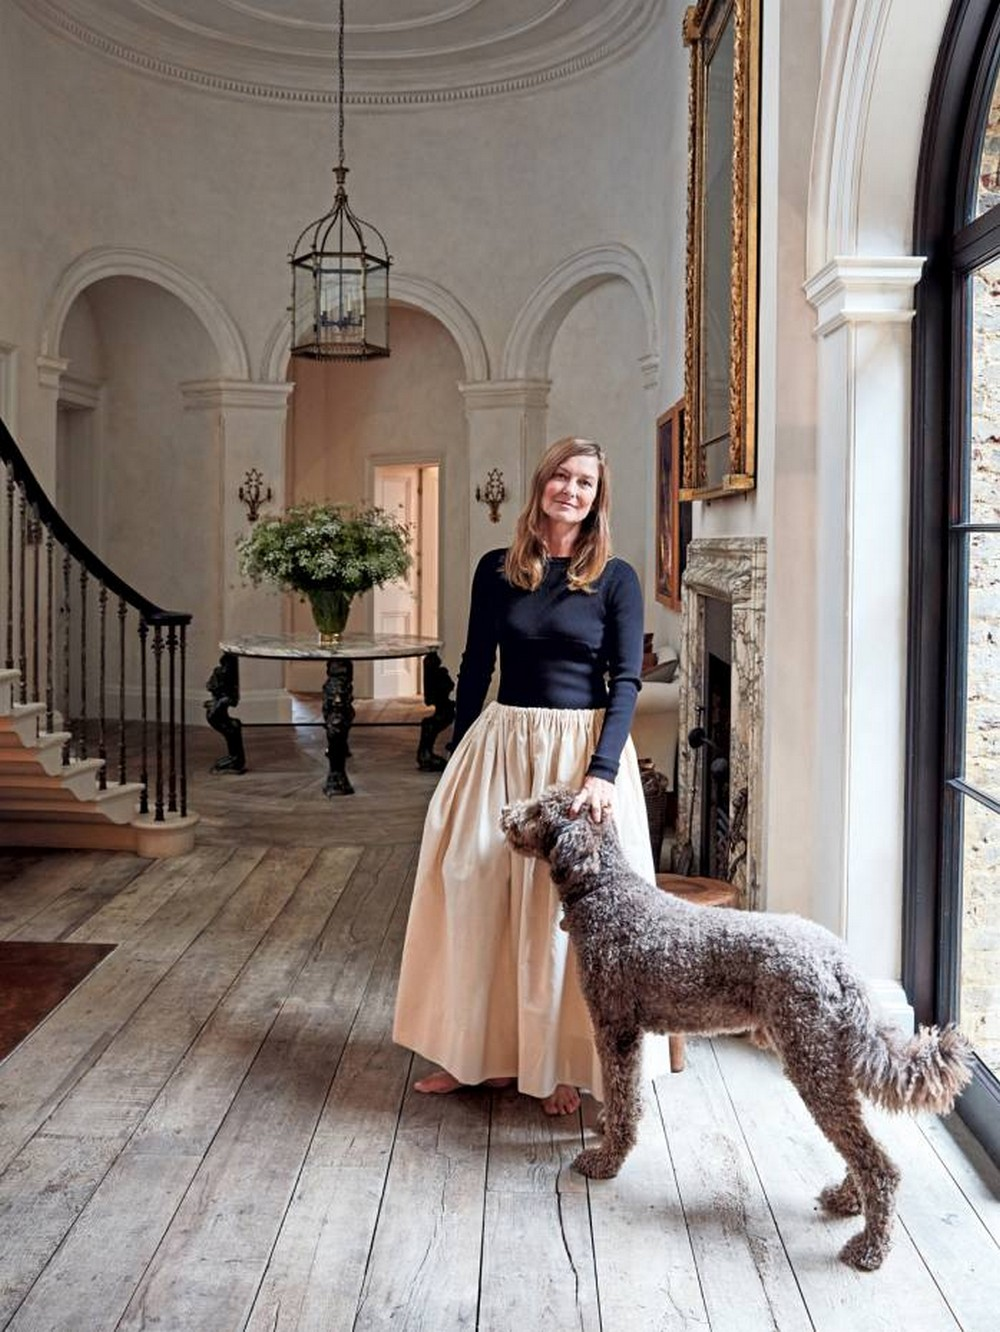 Rose Uniacke Is One Of The Biggest Design Influencers In The UK rose uniacke Rose Uniacke Is One Of The Biggest Design Influencers In The UK Rose Uniacke Is One Of The Biggest Design Influencers In The UK 10